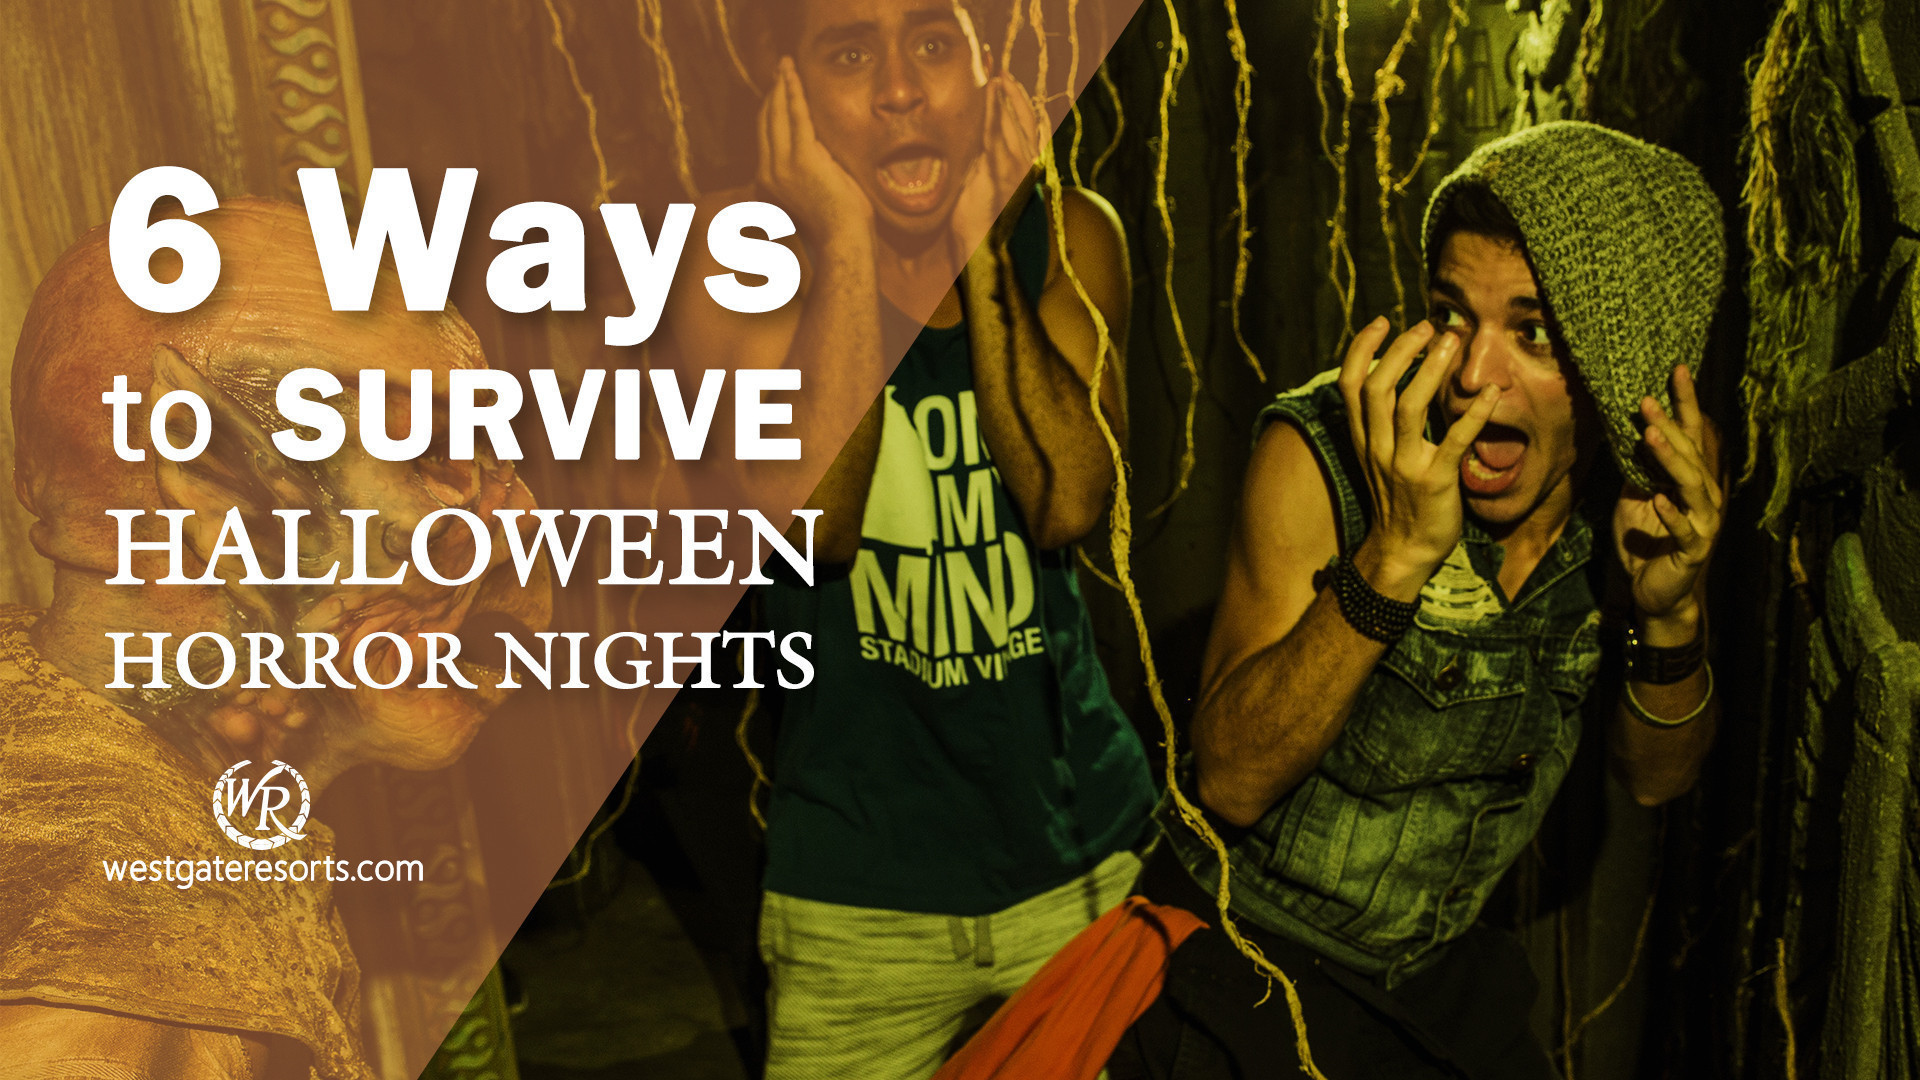 6 Ways to Survive Halloween Horror Nights Wait Times in Orlando for 2018 | Westgate Resorts